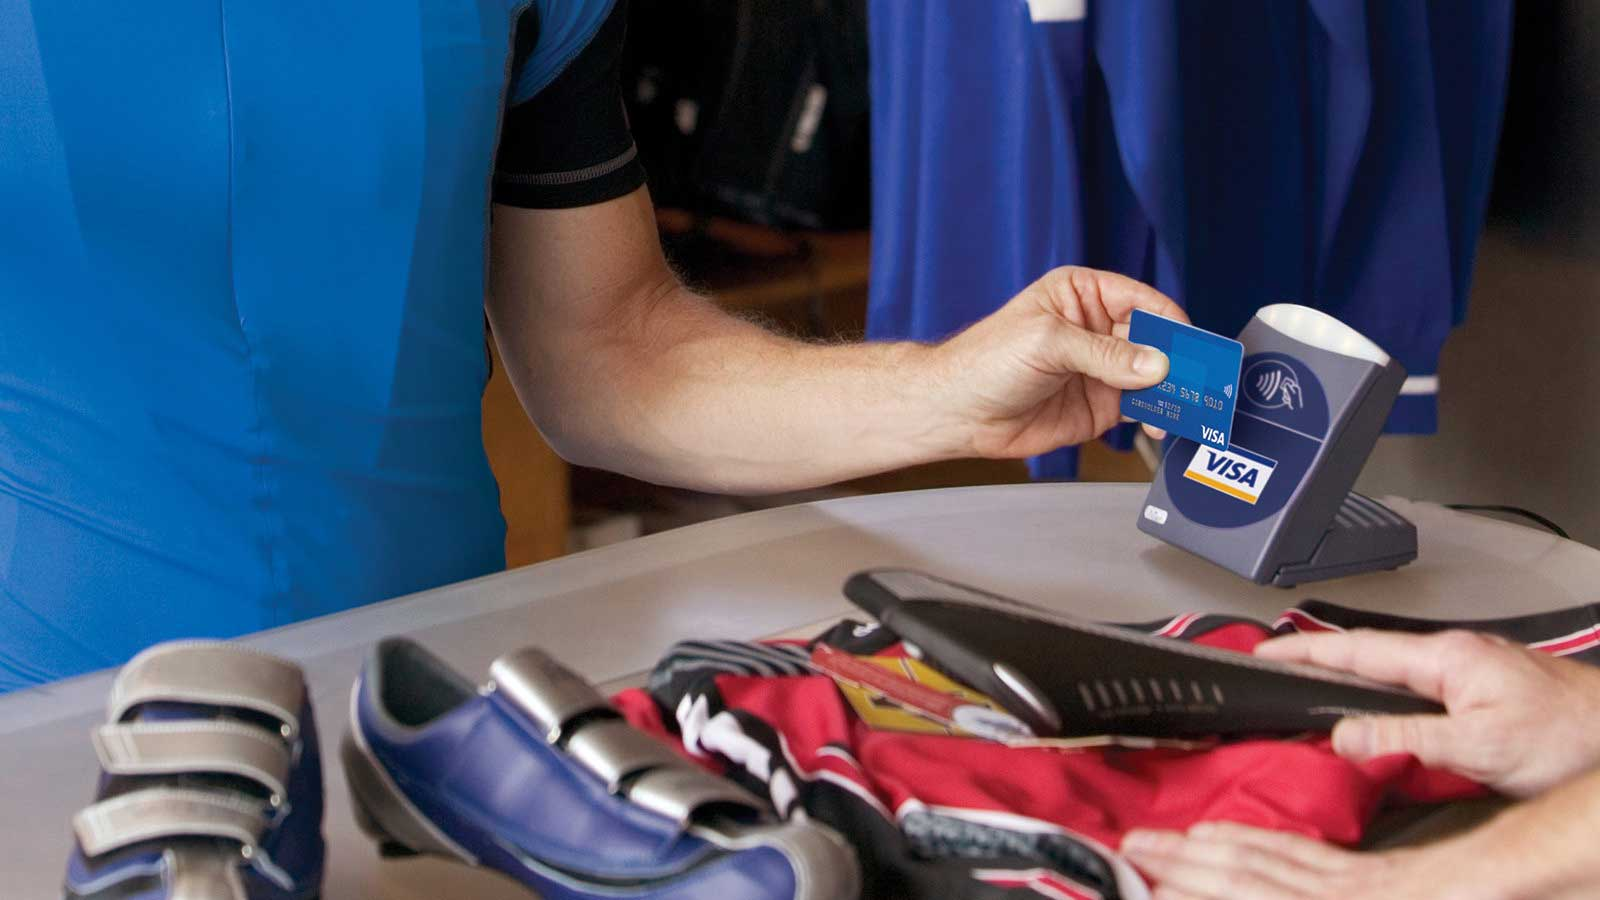 Person using Visa contactless card to pay for shoes.